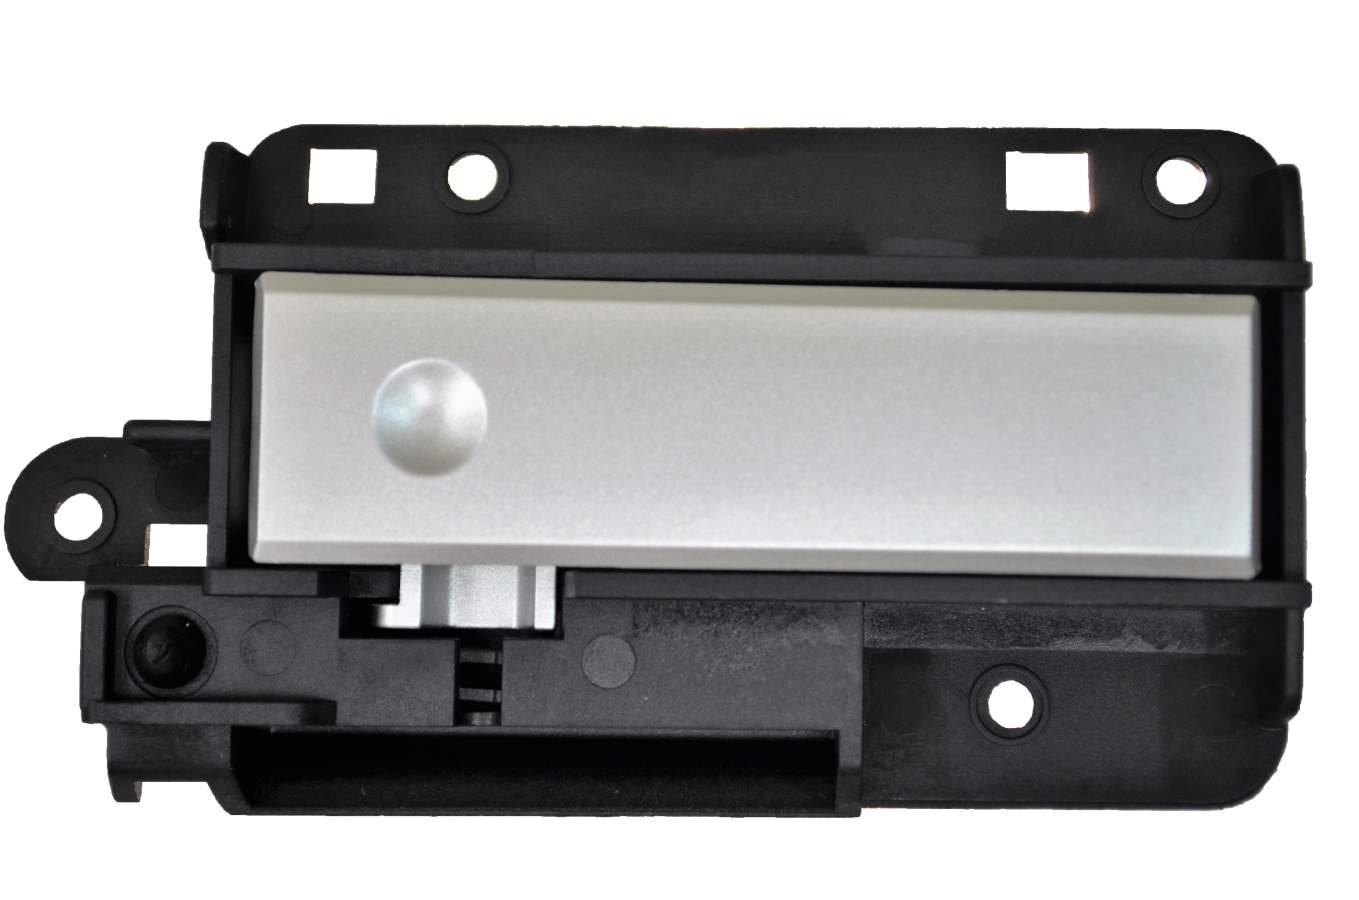 PT Auto Warehouse GM-2647RA - Glove Box Compartment Lock Latch Handle, Black Housing with Silver Lever